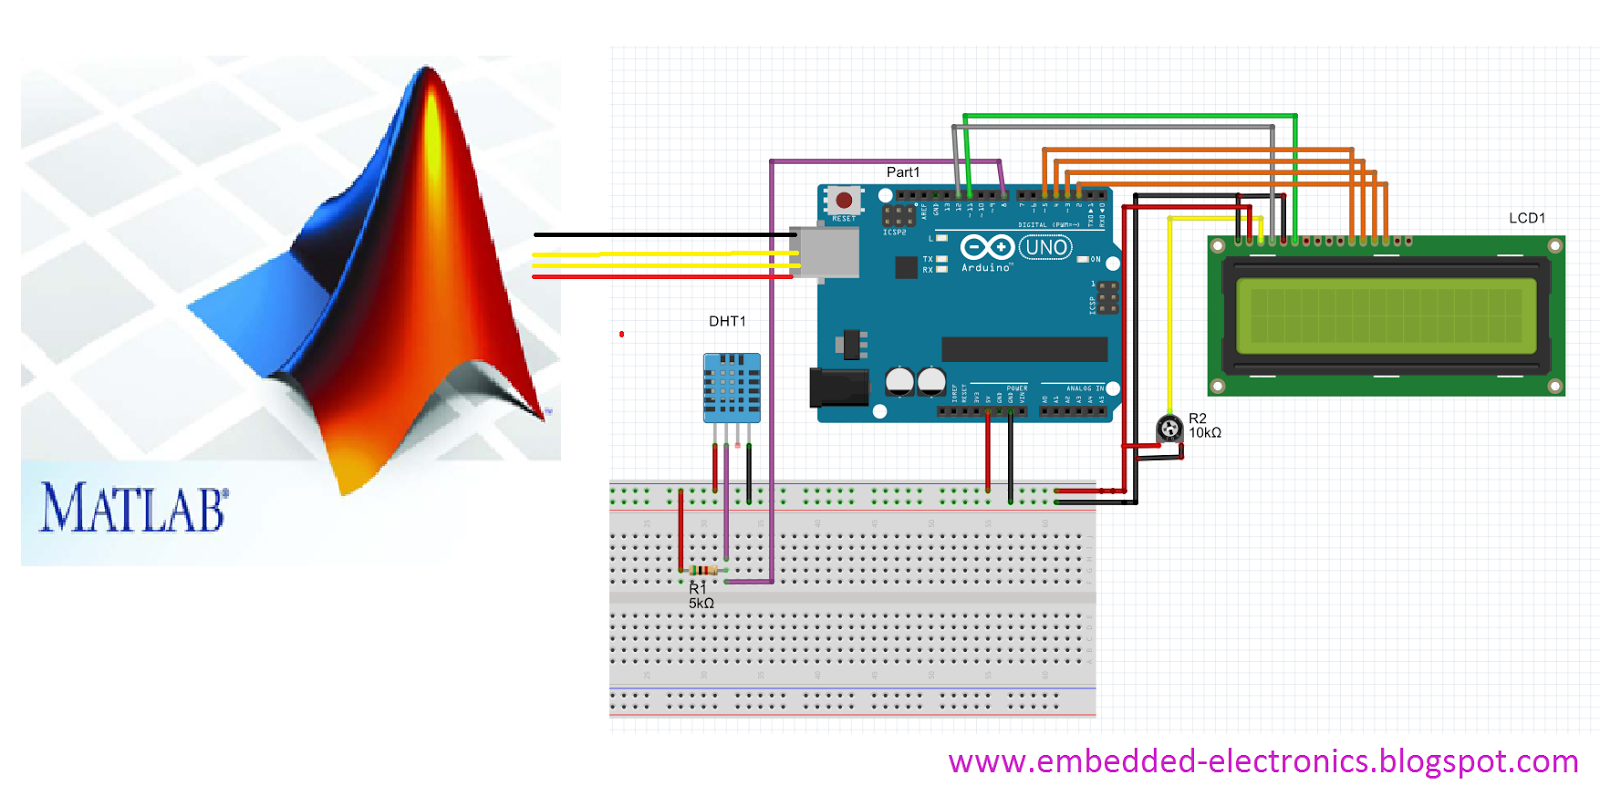 Embedded-Electronics: DHT11 Interfacing with MATLAB and Arduino